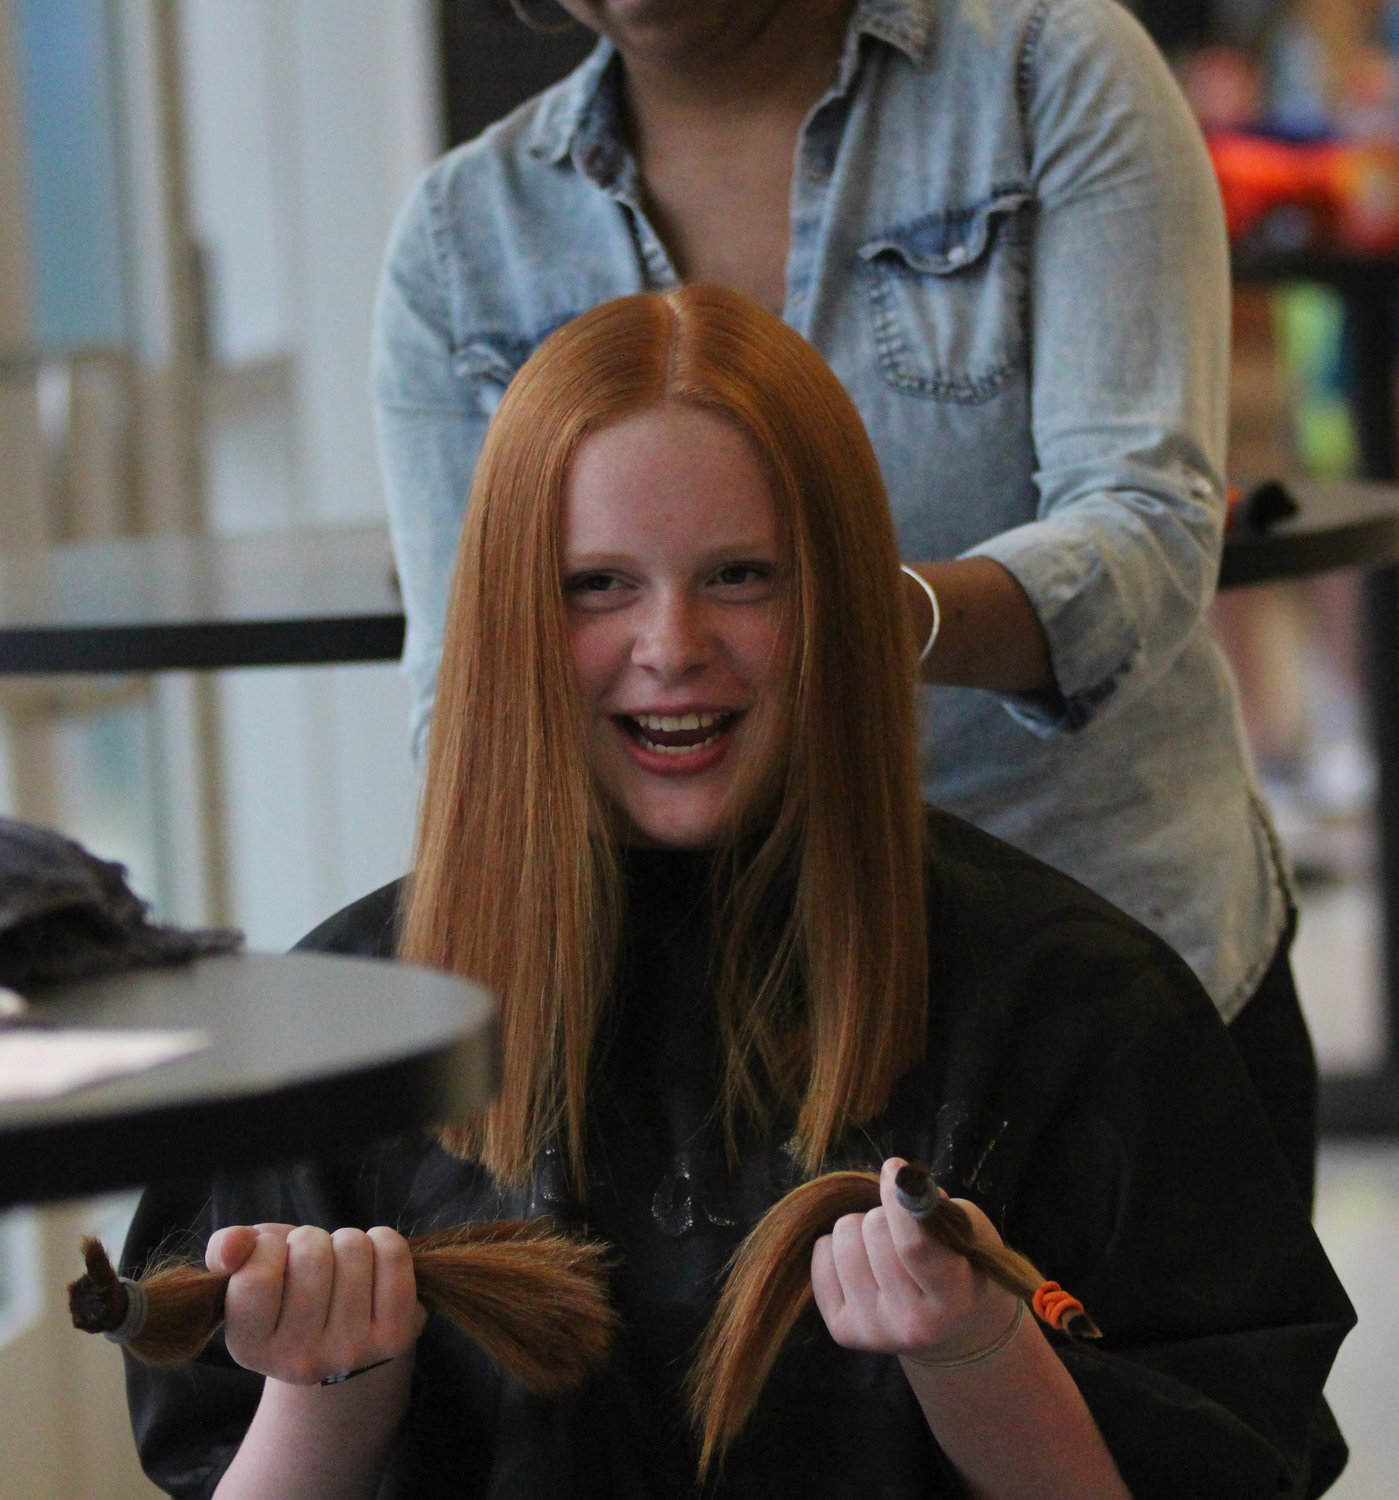 Abby Grimland reacts to her hair donation at Middletown Area High School's Mini-THON on May 3.